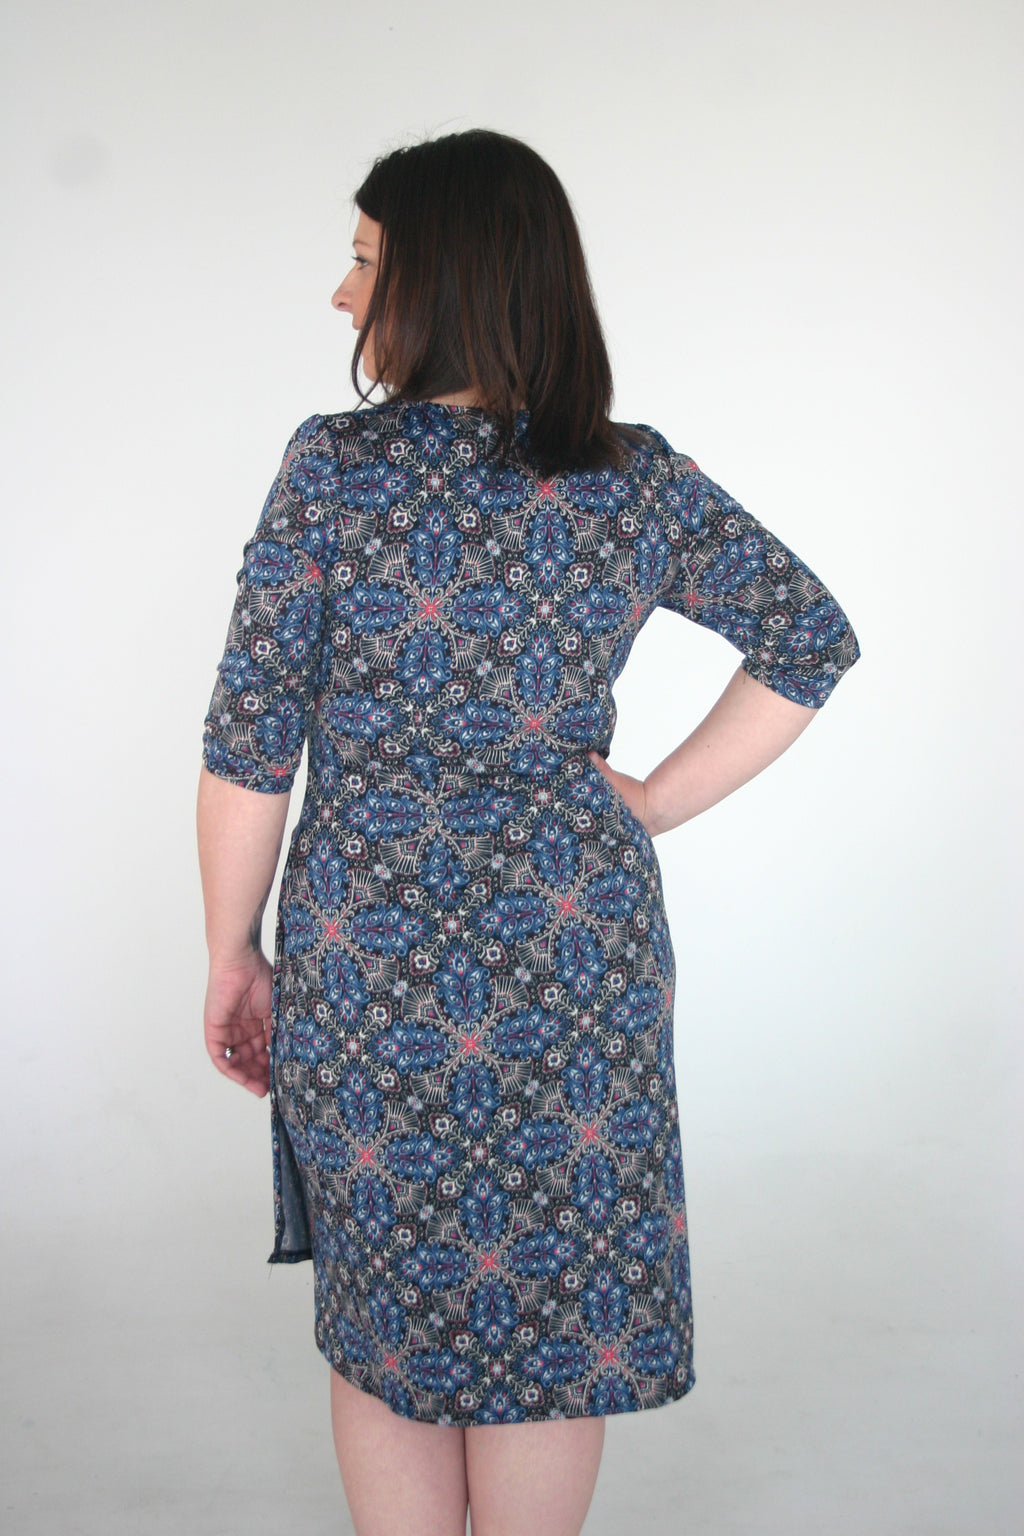 Ciara Cinch Dress - Tile Mix Print